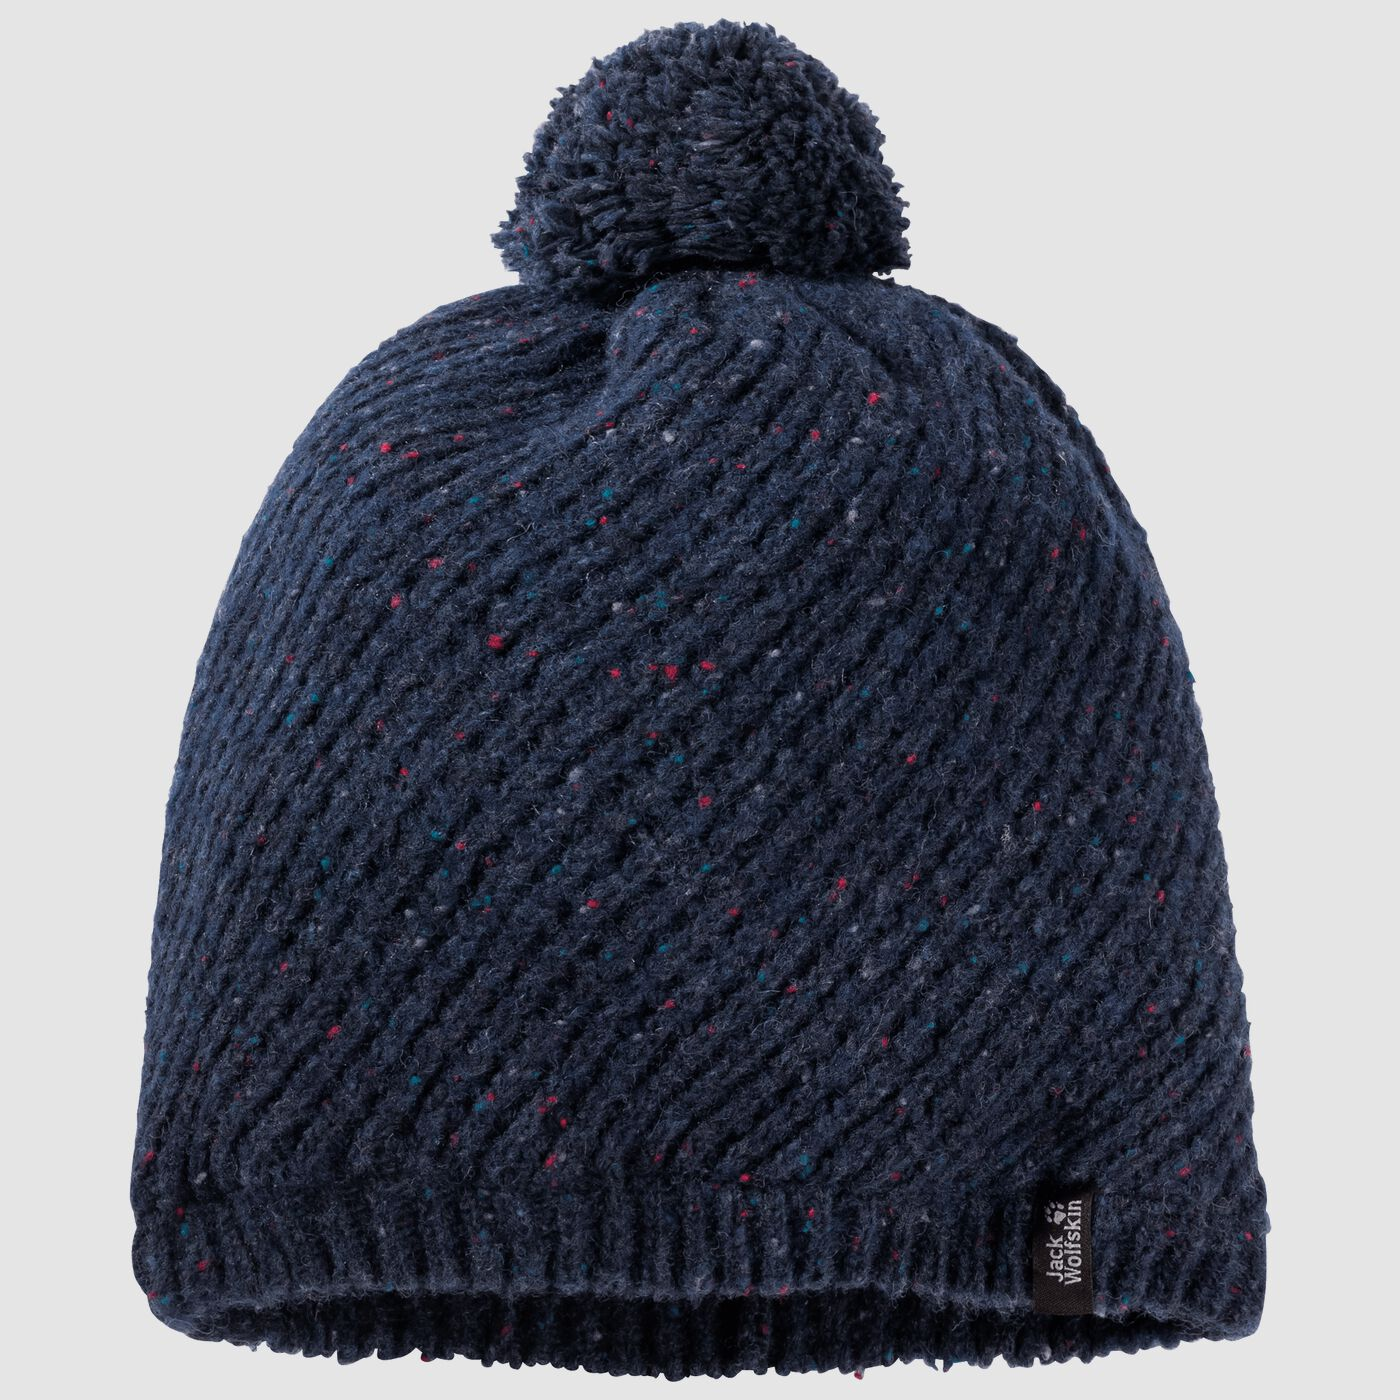 STORMLOCK WOOL CAP WOMEN